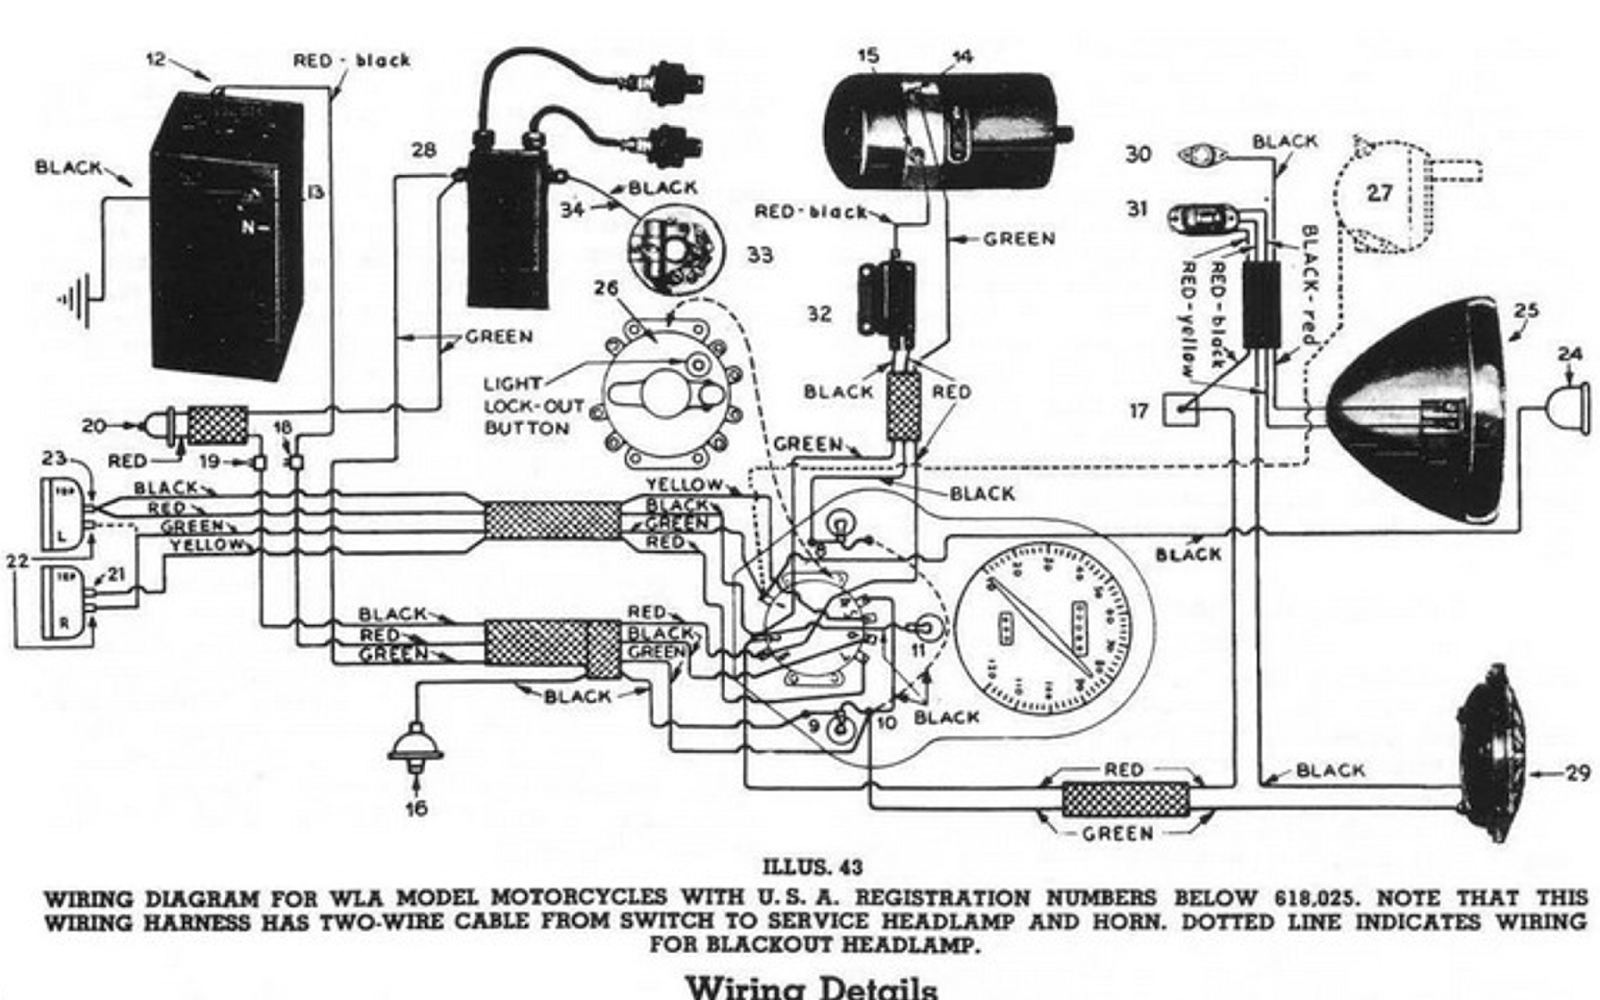 Harley Wiring Diagram | basic electronics wiring diagram